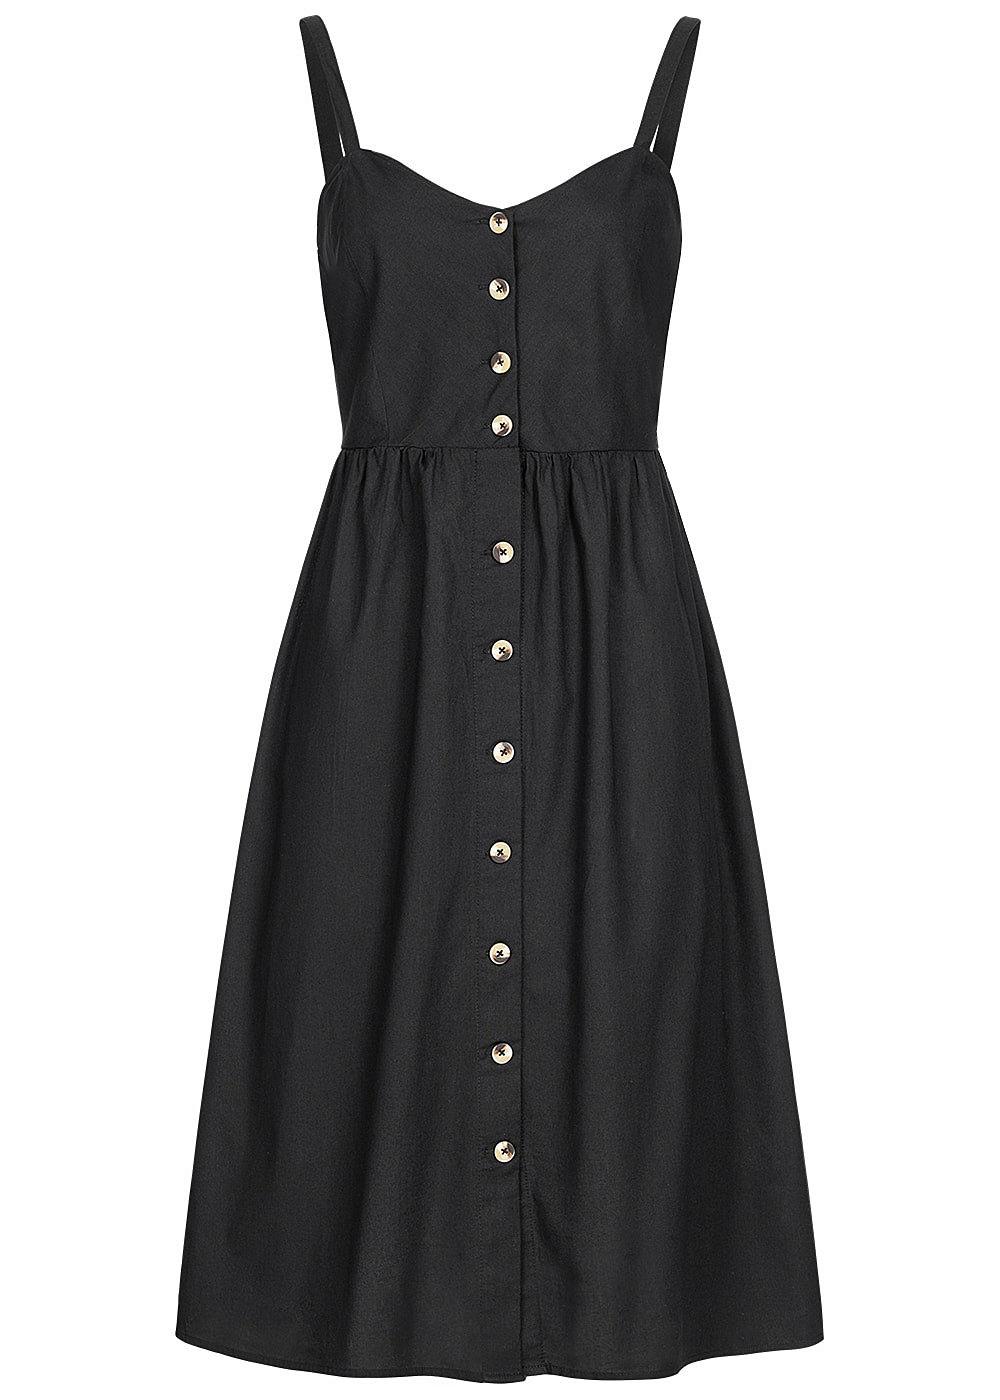 Seventyseven Lifestyle Damen Strap Dress Buttons Front schwarz - Art.-Nr.: 19059058